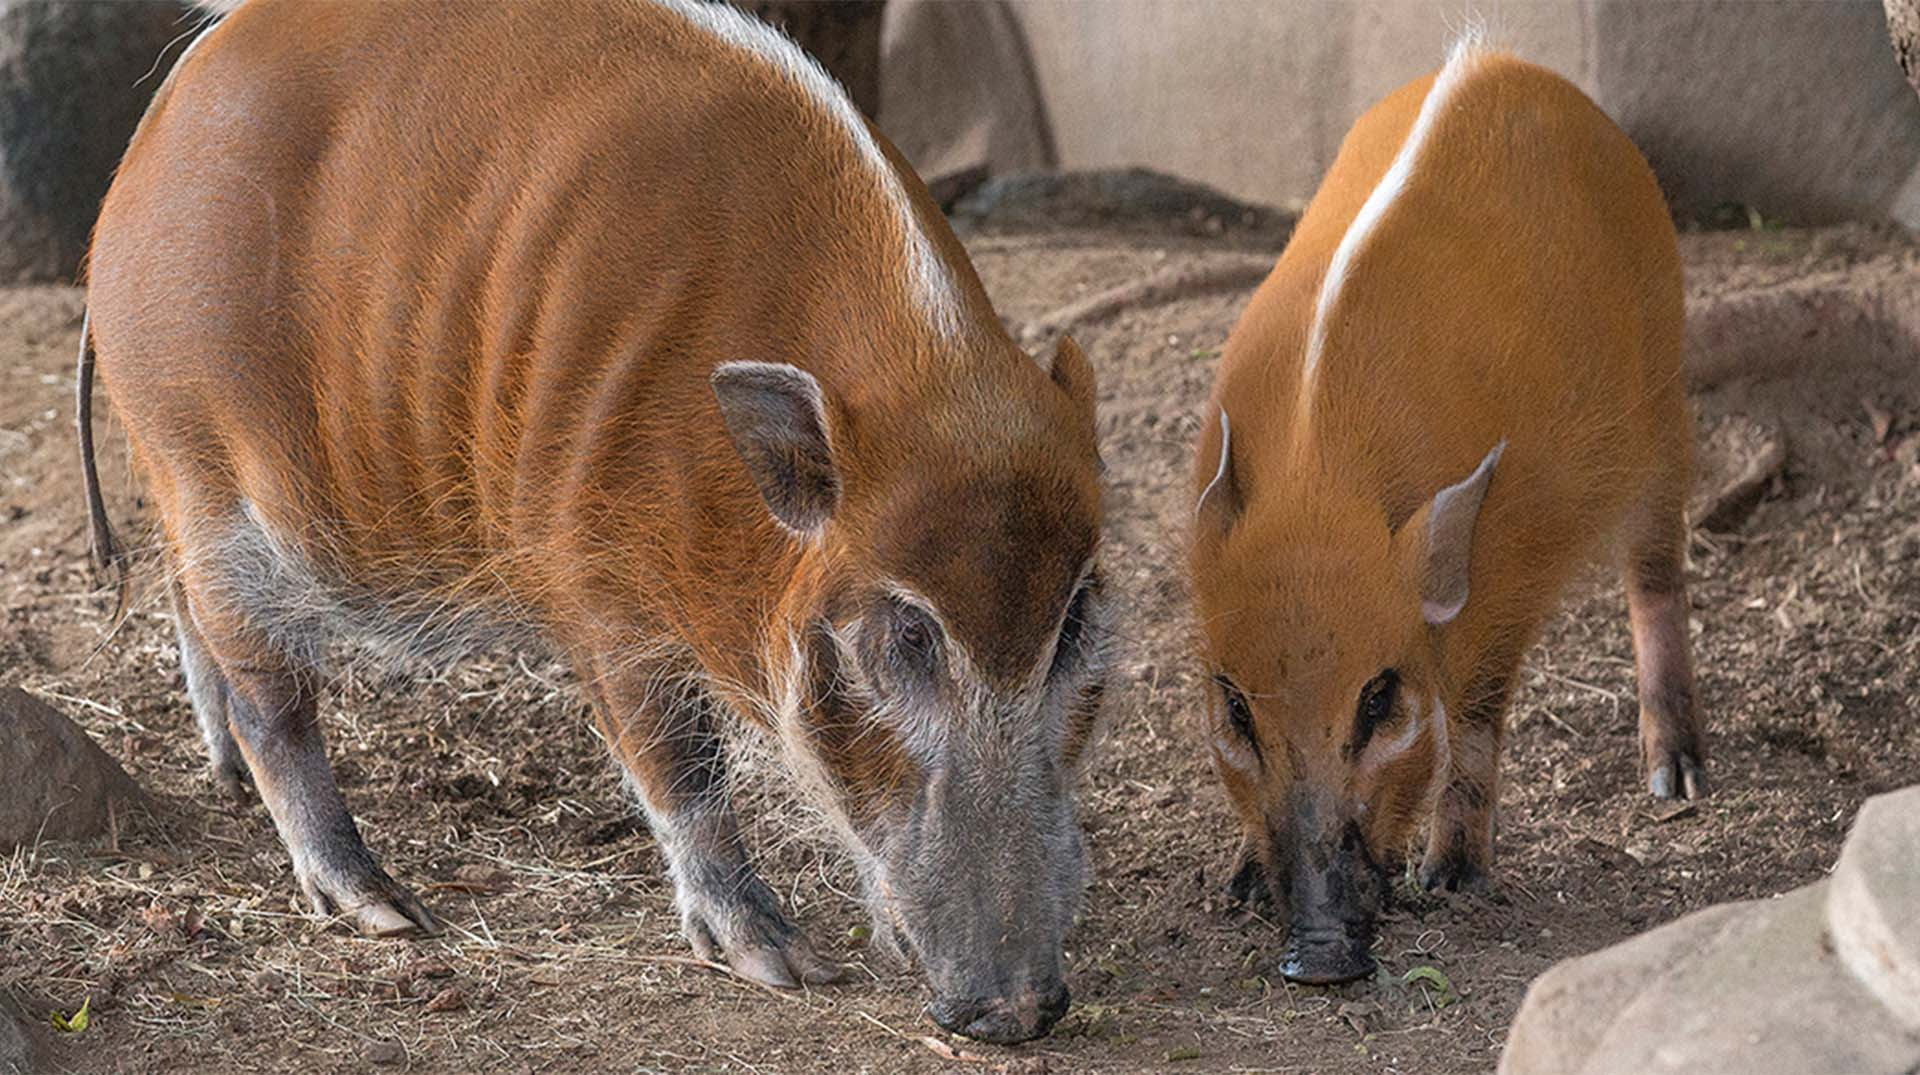 Red river hogs Murphy and Mina at the zoo.